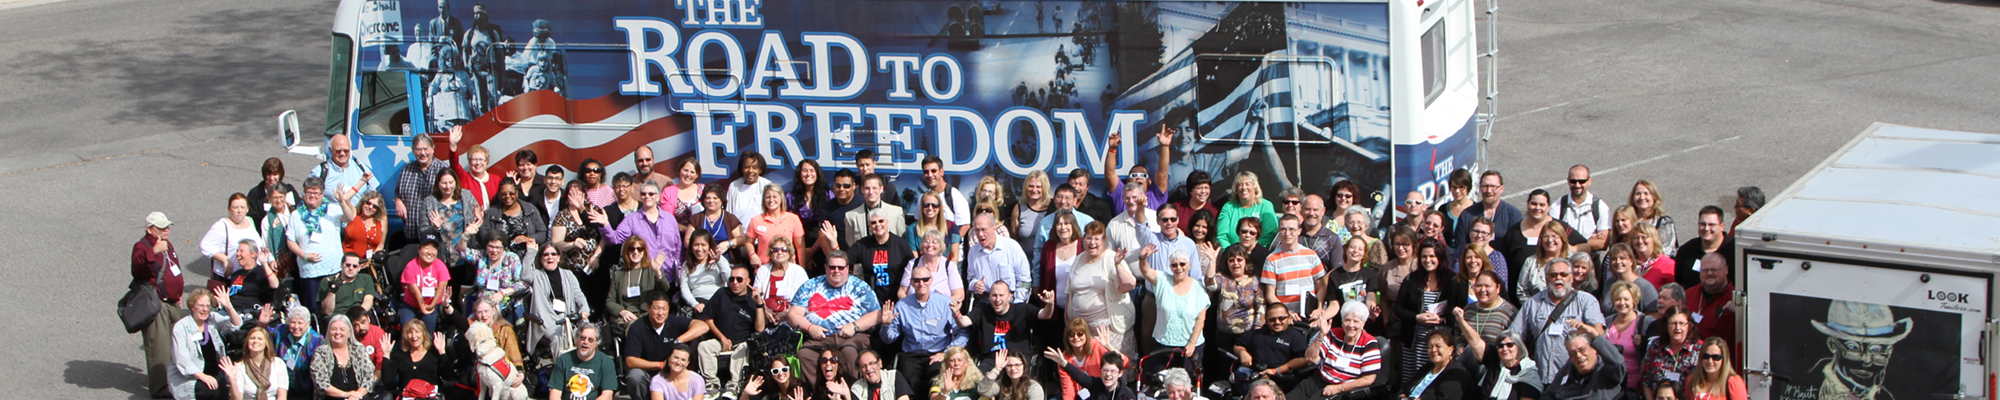 Image of a crowd of people in front of the Road to Freedom bus.